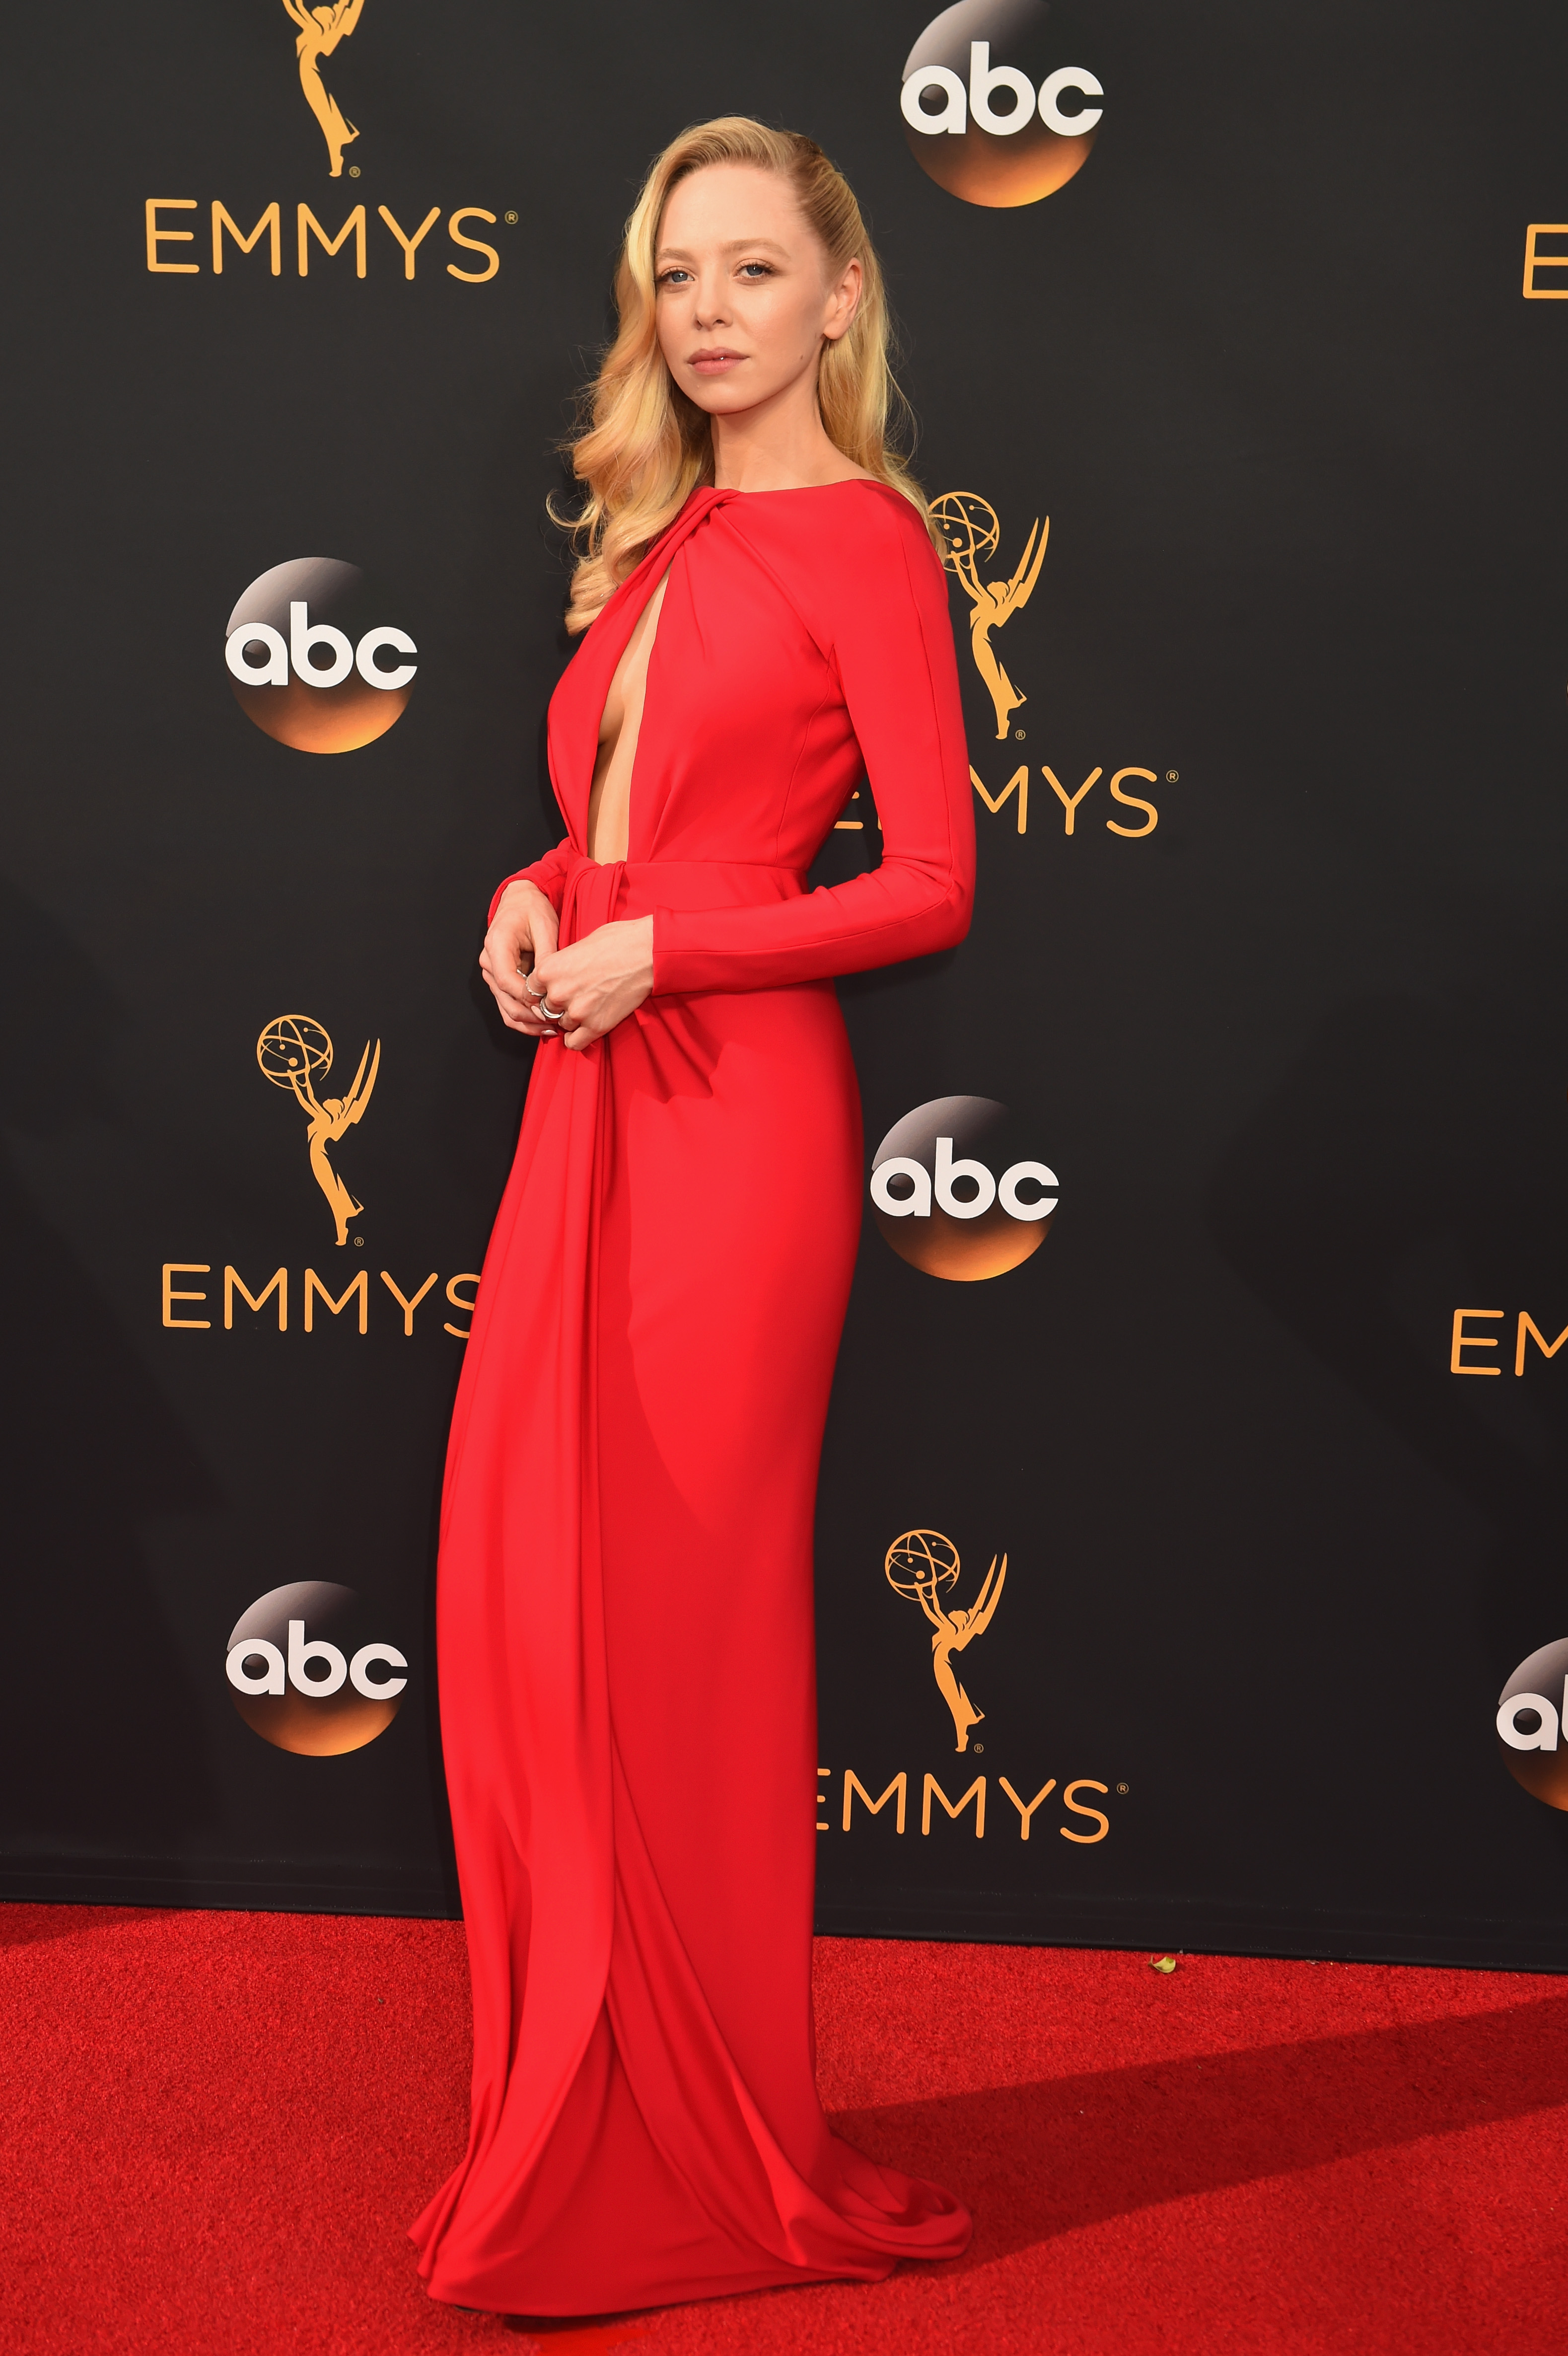 Portia Doubleday arrives at the 68th Annual Primetime Emmy Awards at Microsoft Theater on Sept. 18, 2016 in Los Angeles.